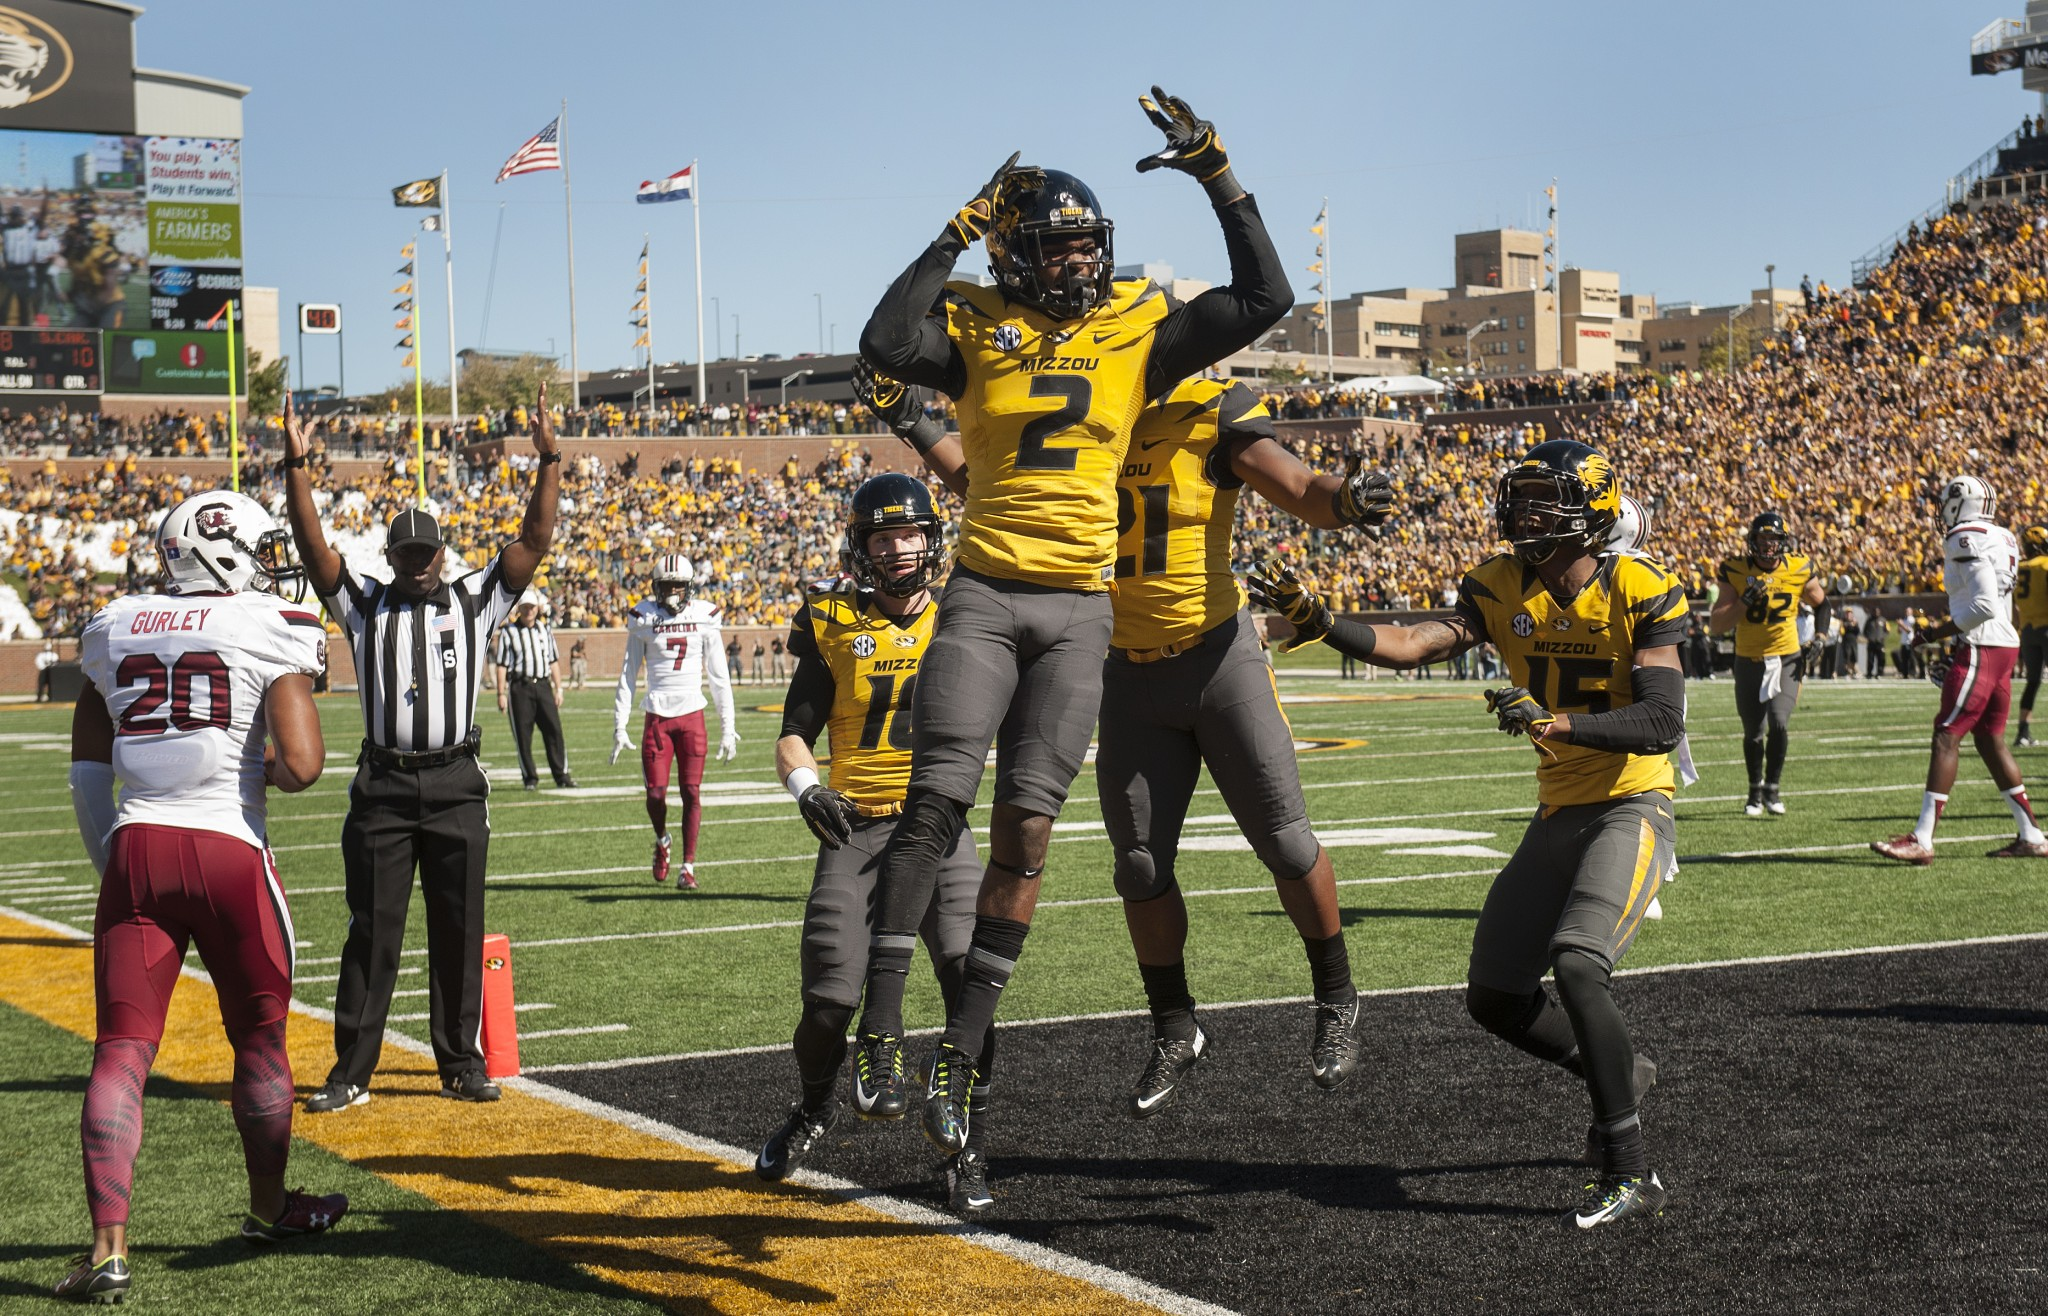 Missouri wide receiver Nate Brown, center, celebrates with teammates after he caught a touchdown pass over South Carolina safety T.J. Gurley, left, during the second quarter of an NCAA college football game Saturday, Oct. 3, 2015, in Columbia, Mo. (AP Photo/L.G. Patterson)